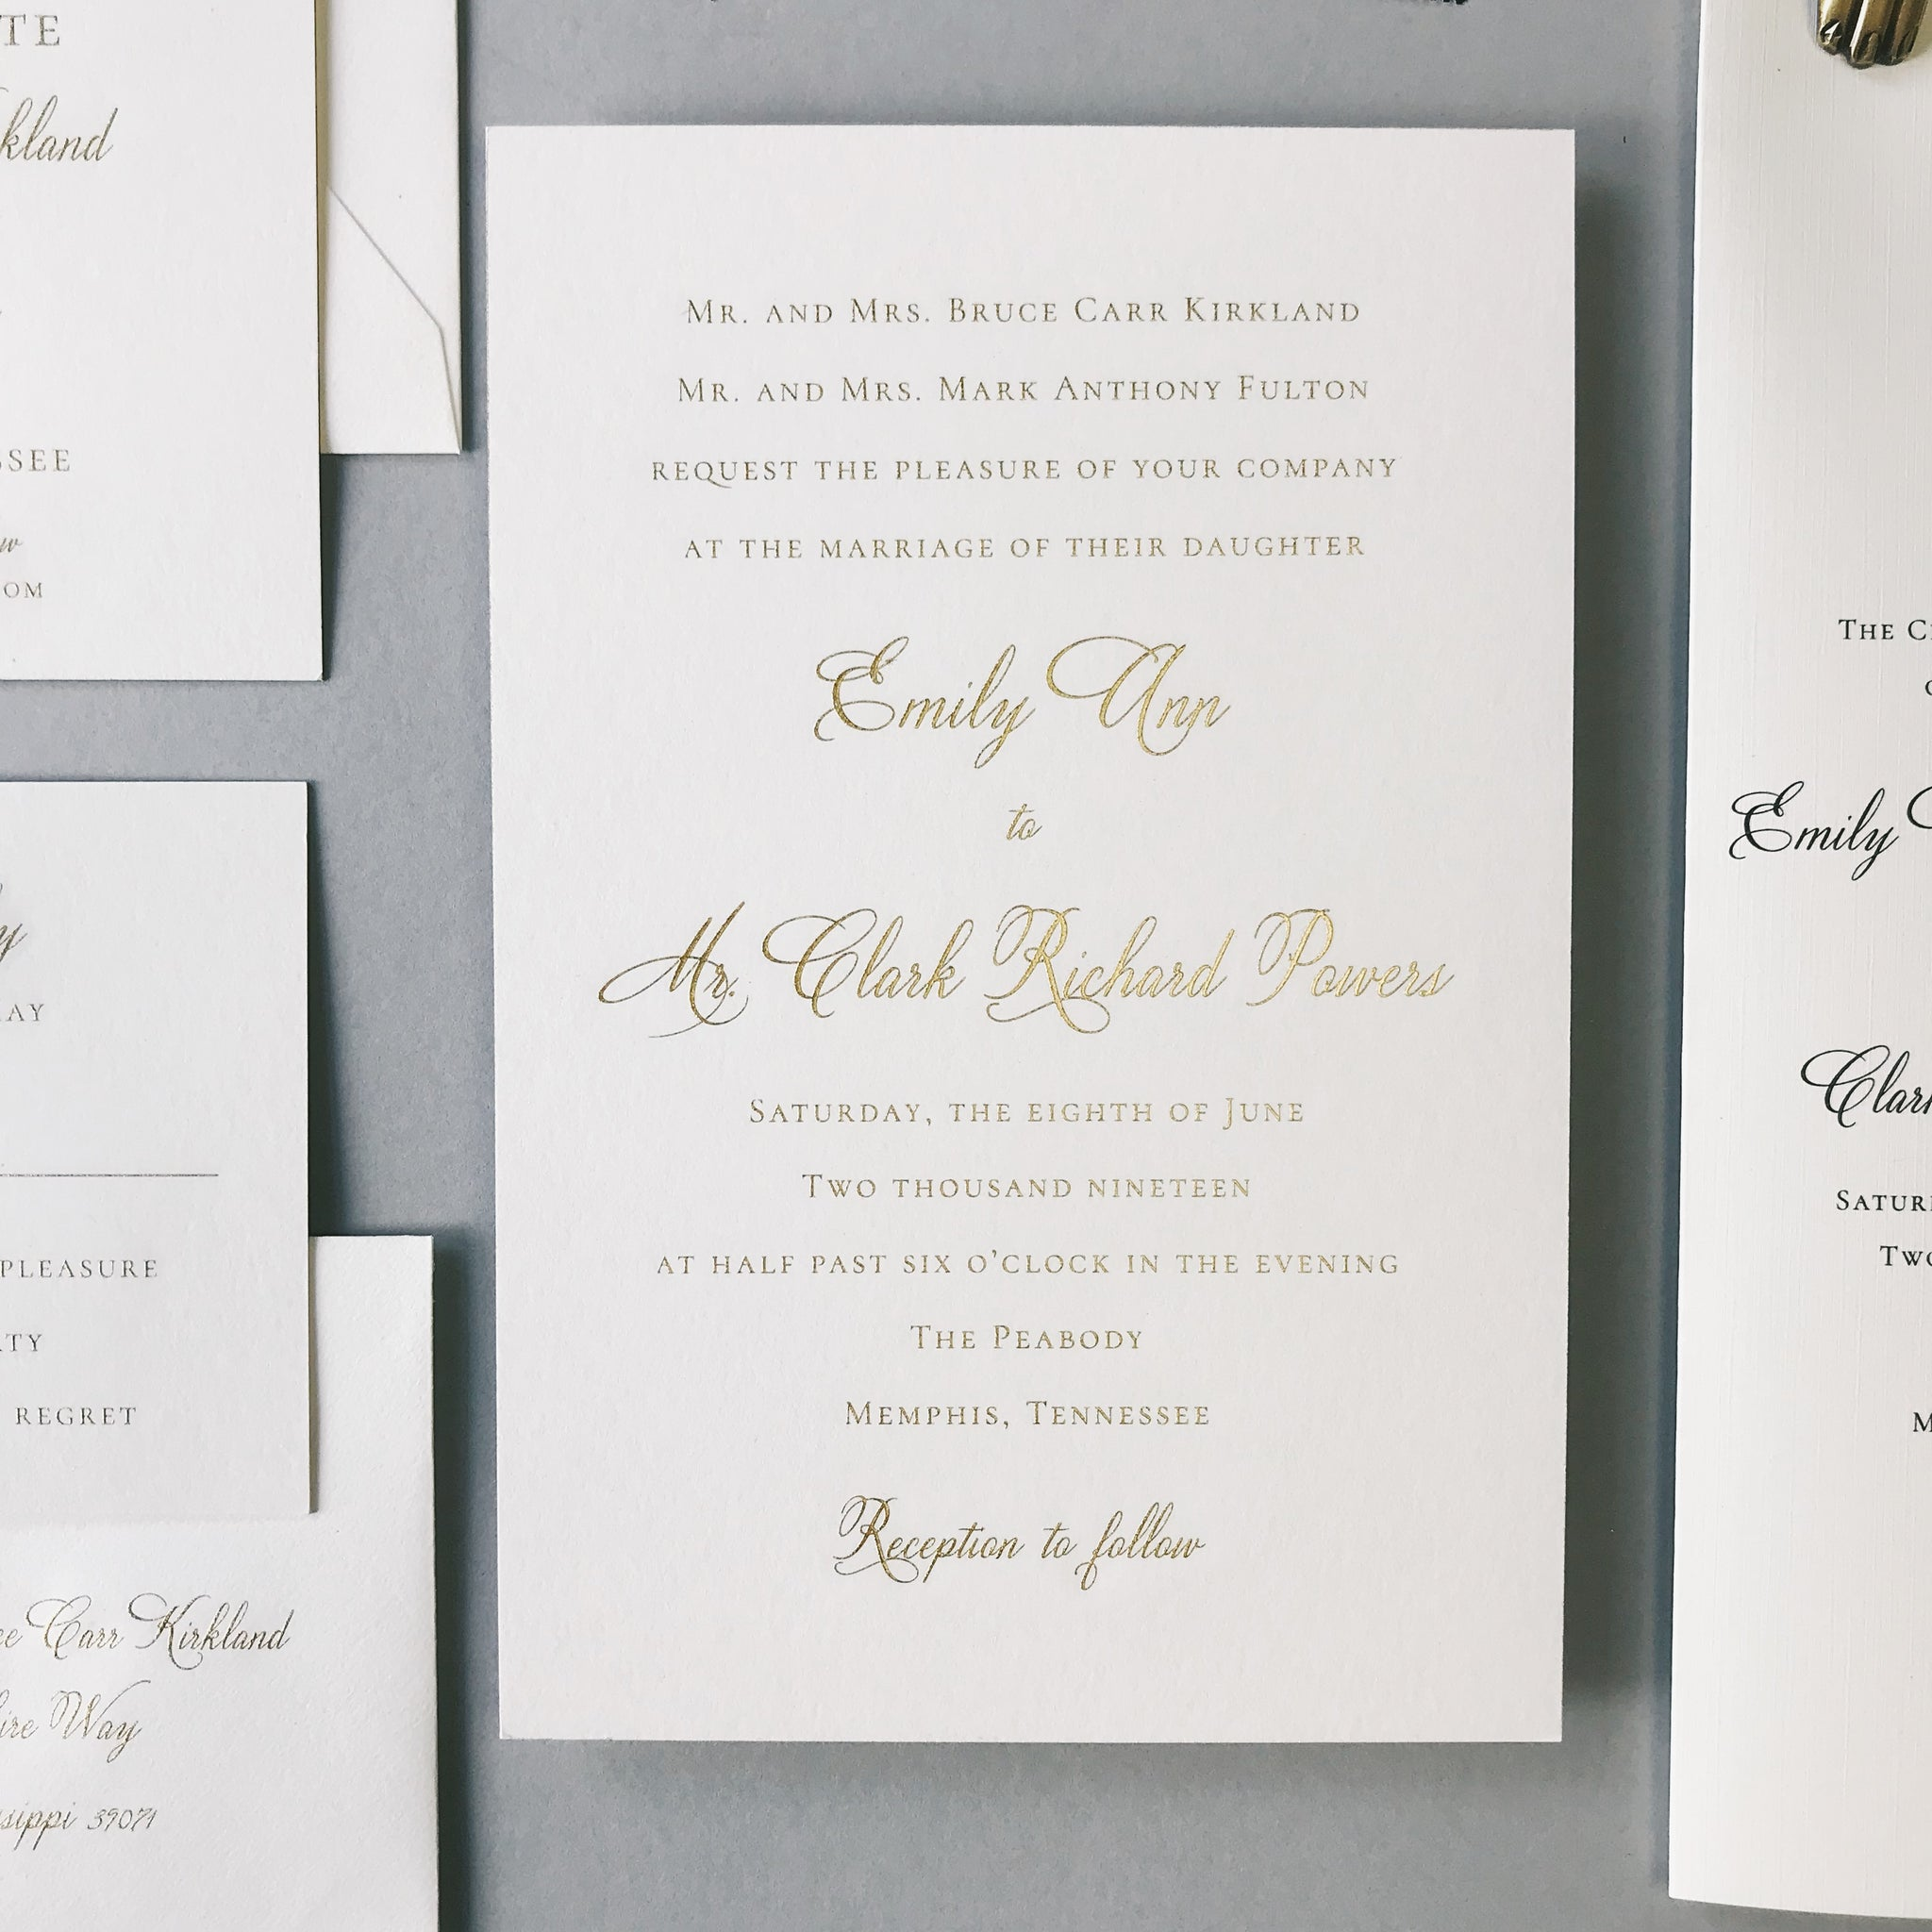 Kirkland Wedding Invitation - Deposit Listing